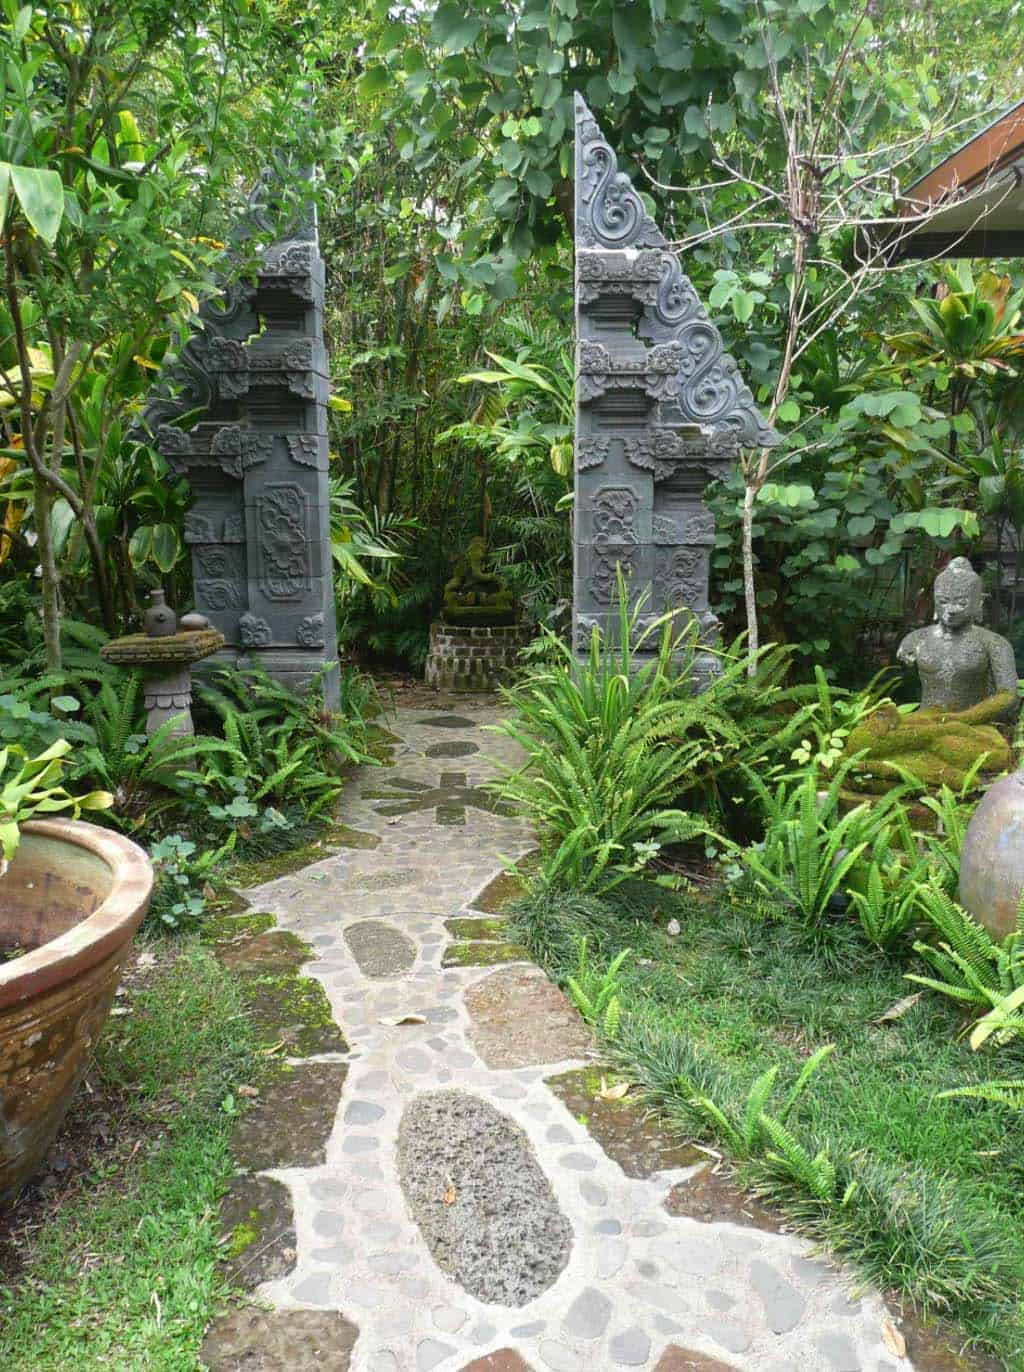 Garden Stone Pathway Ideas-25-1 Kindesign